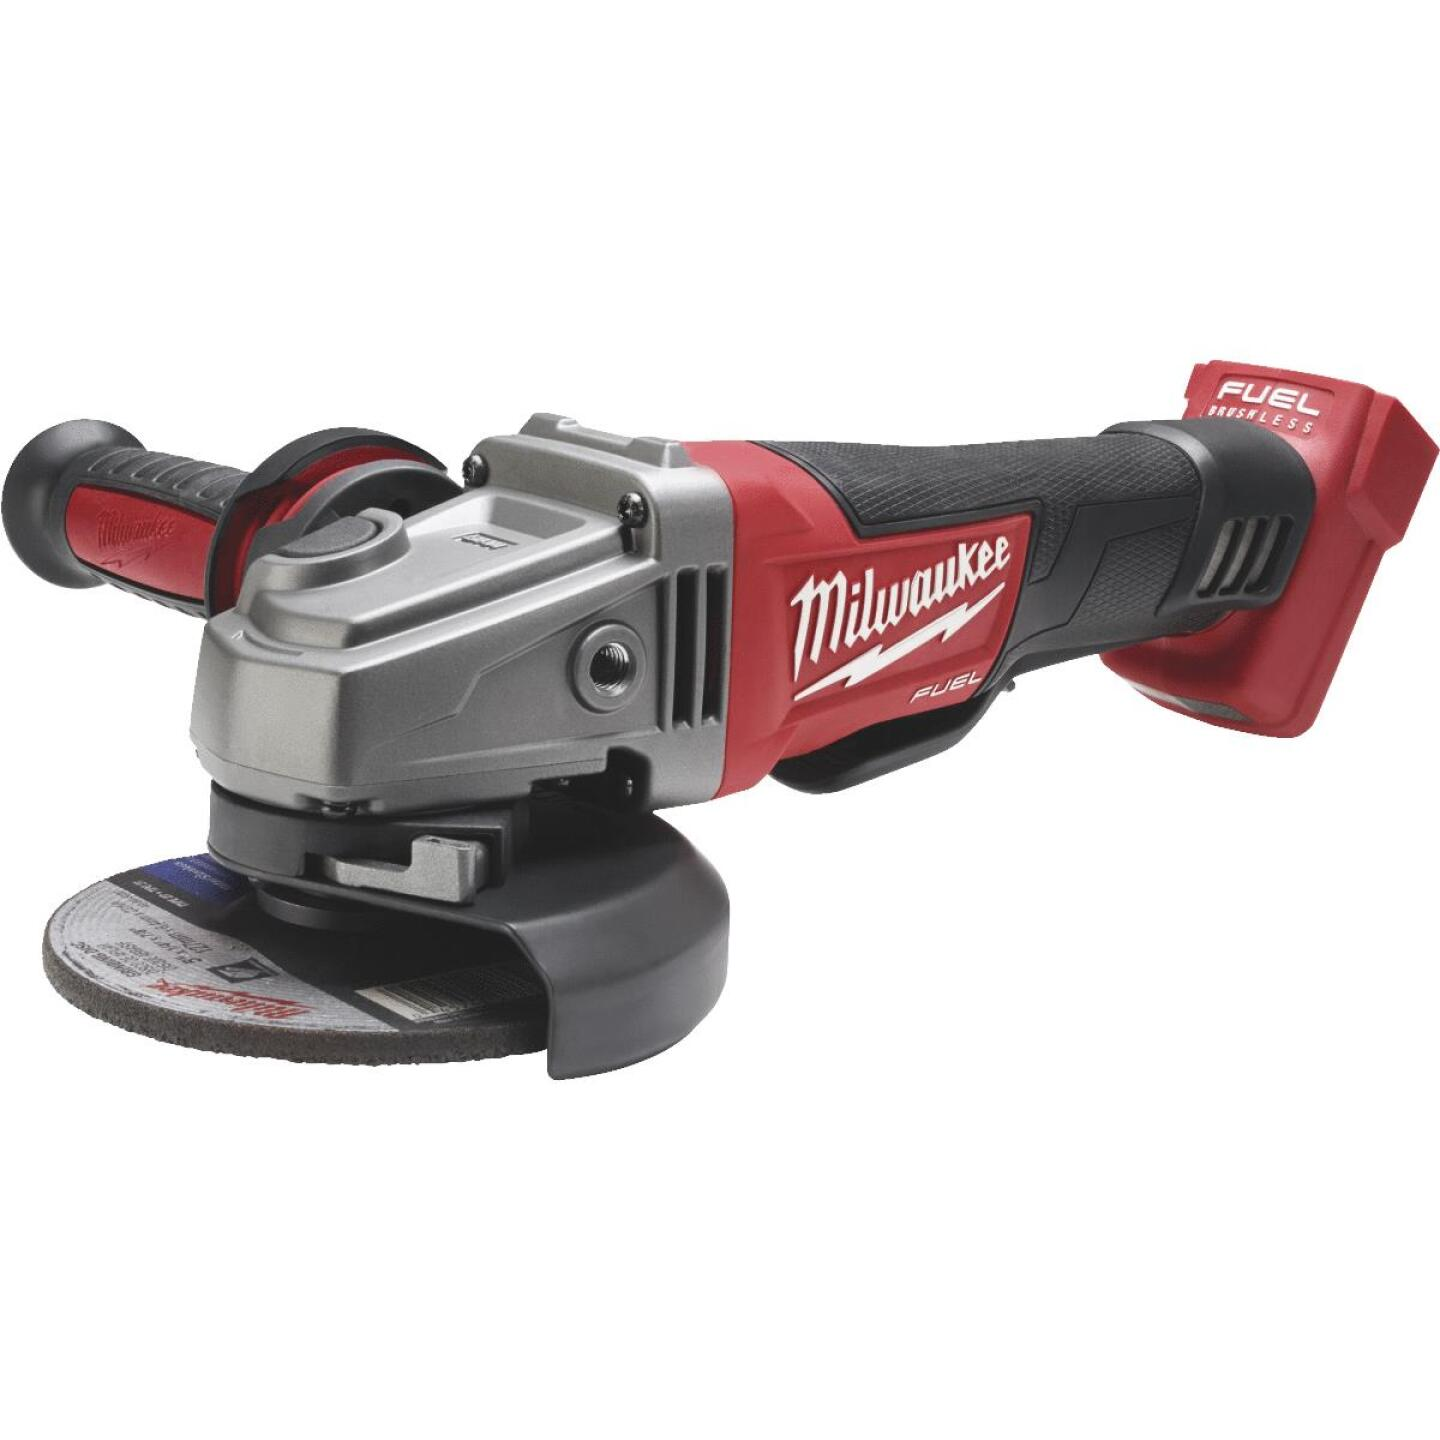 Milwaukee M18 FUEL 18 Volt Lithium-Ion Brushless 4-1/2 In. - 5 In. Cordless Angle Grinder, Paddle Switch No-Lock (Bare Tool) Image 1